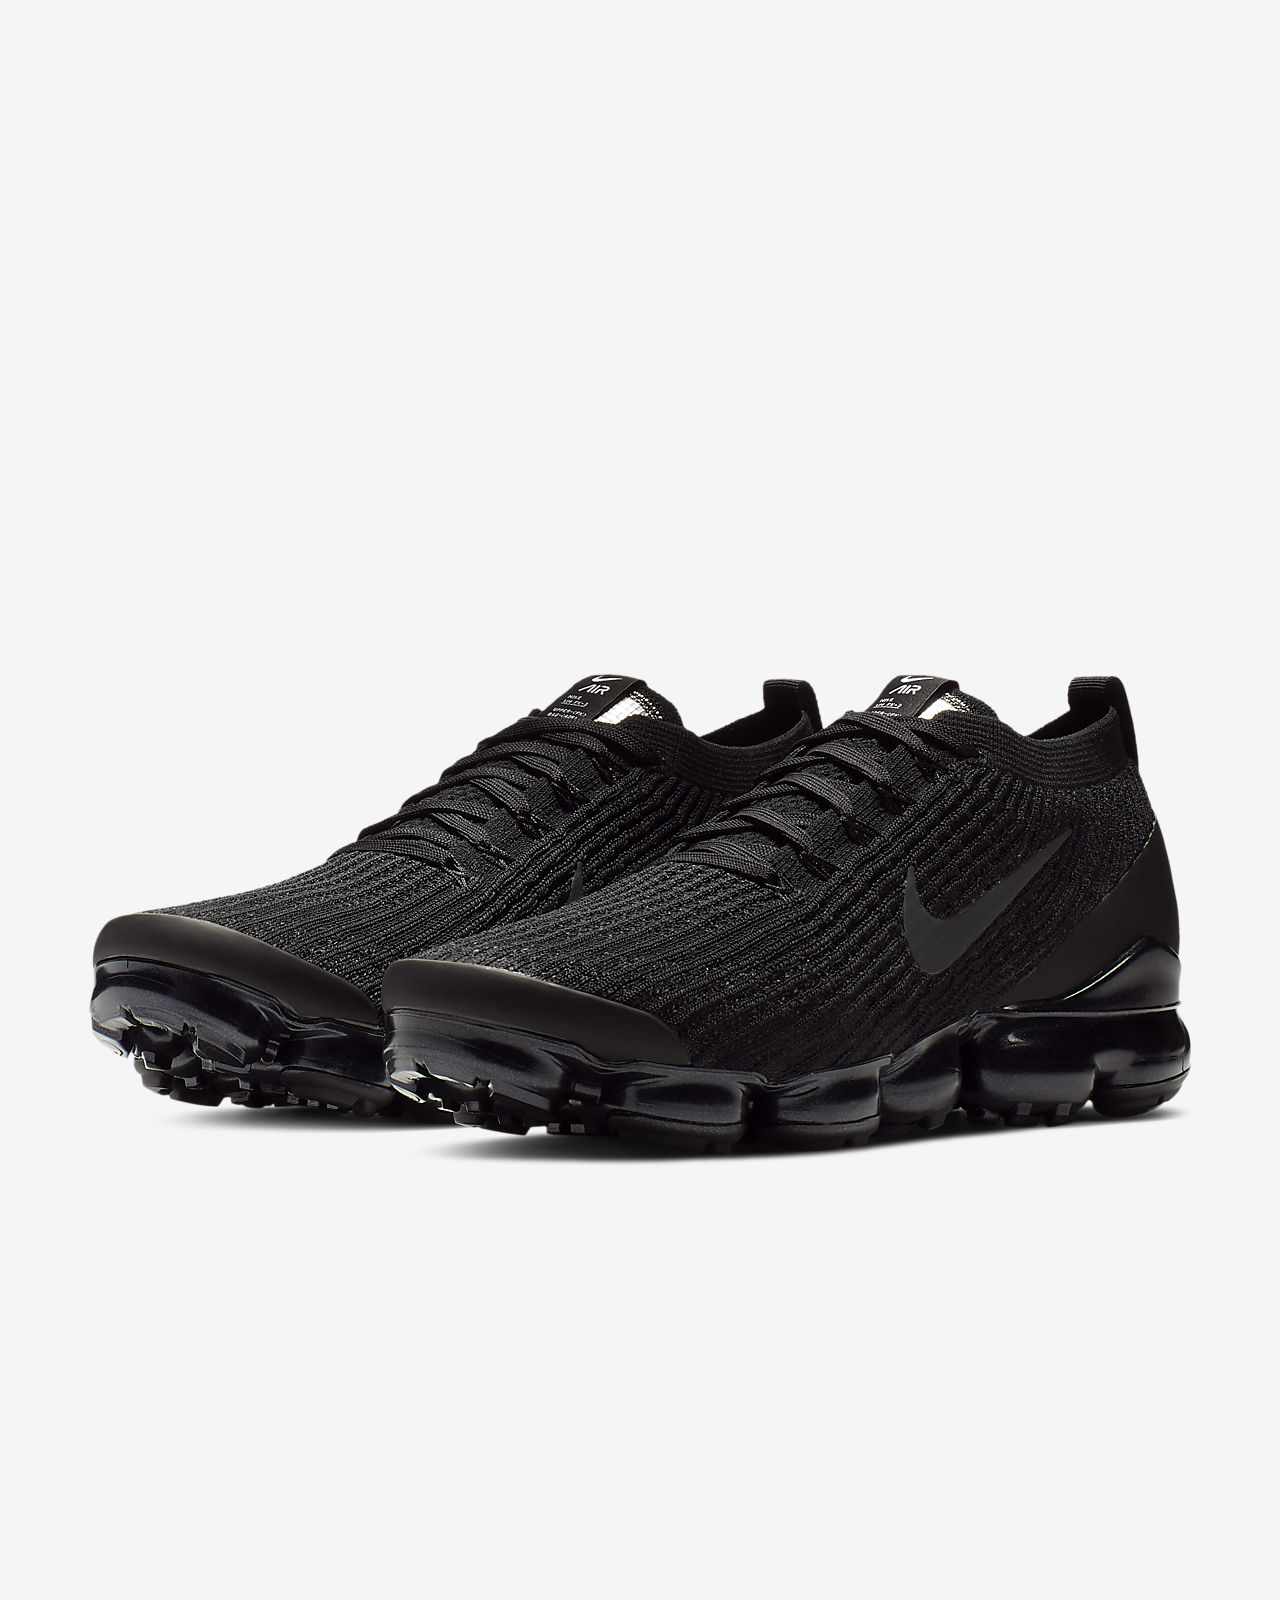 buy online 2faa2 fac99 ... Chaussure Nike Air VaporMax Flyknit 3 pour Homme